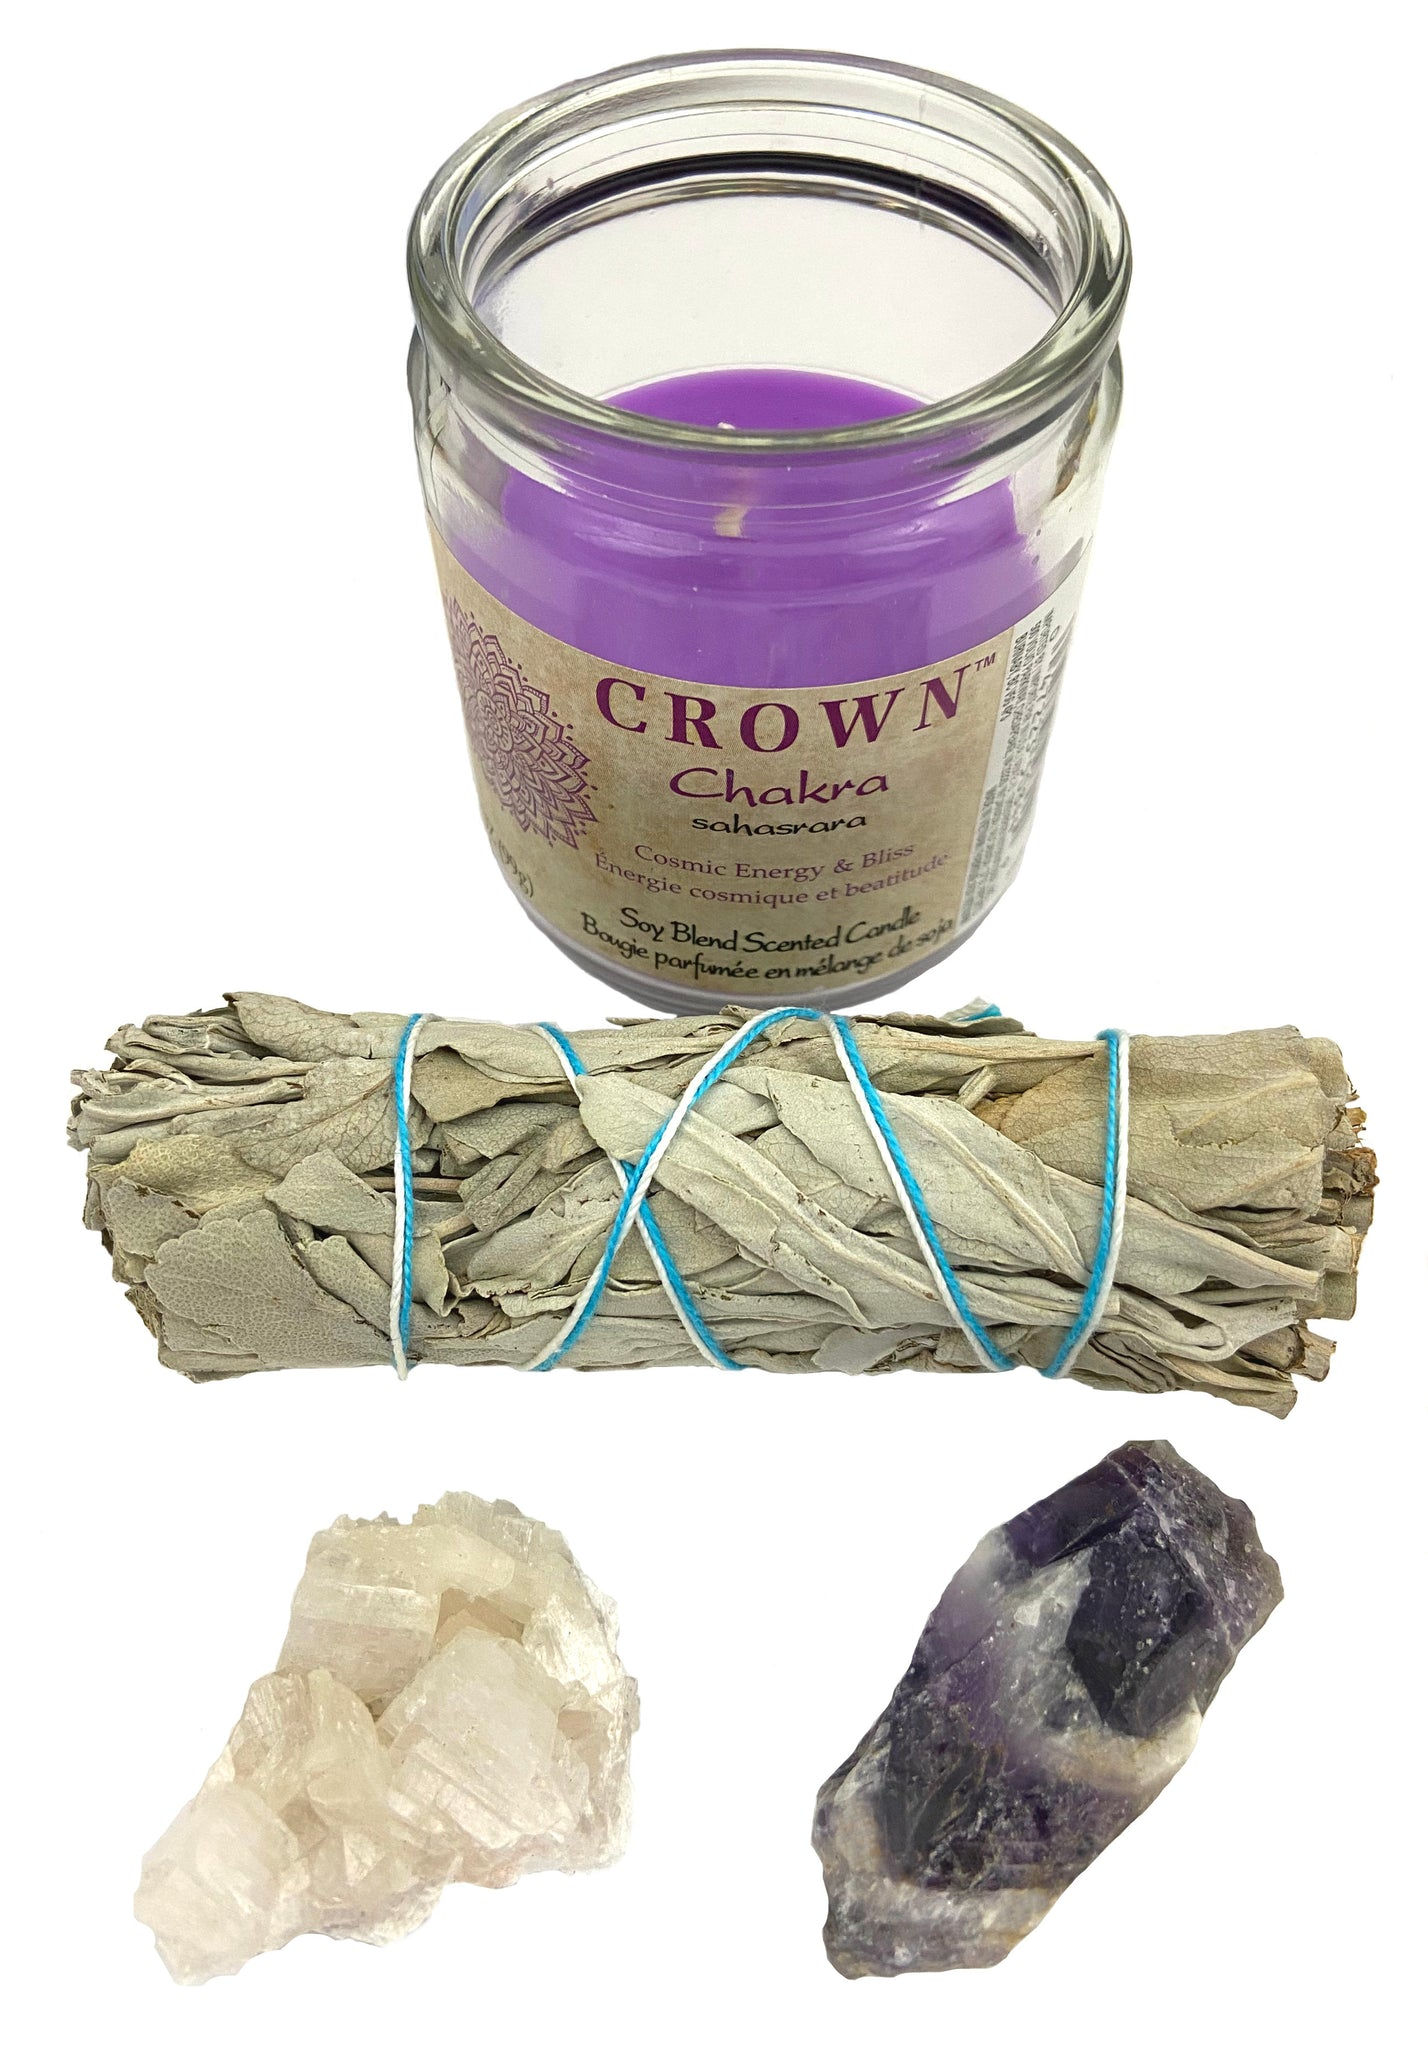 Chakra Candle Kit - Crown - Open your crown chakra for enlightenment & spirituality with crystals